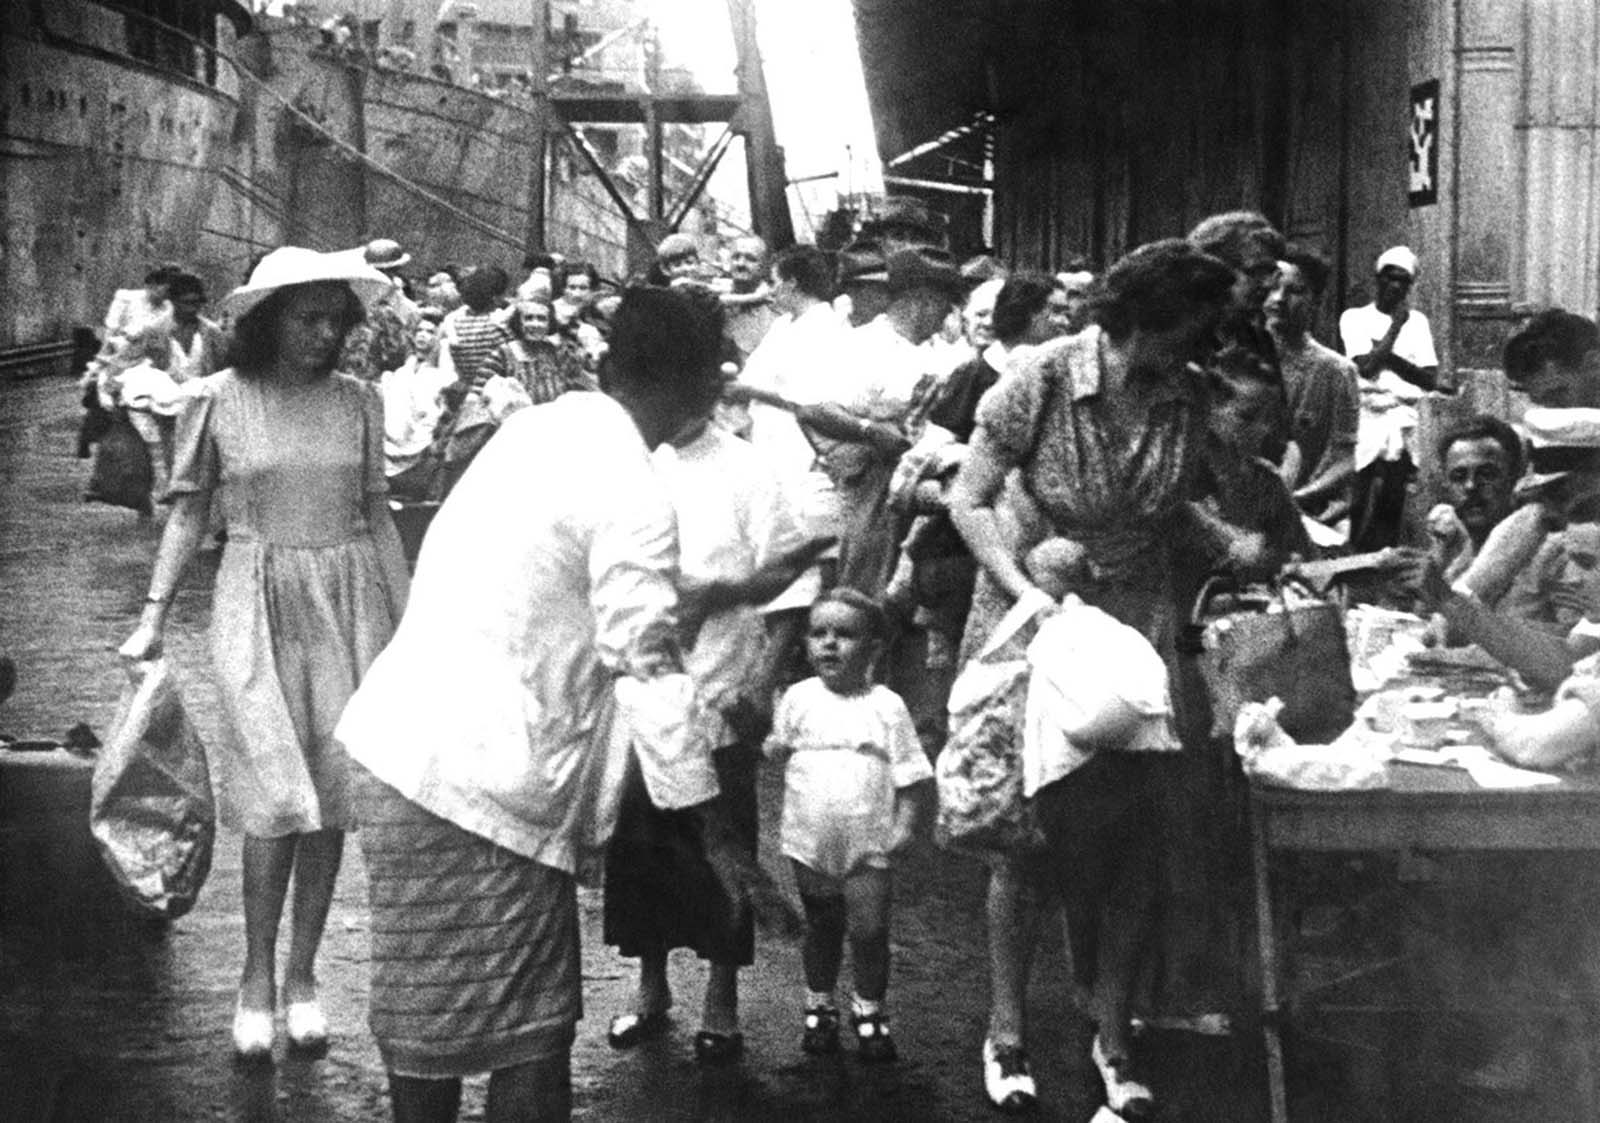 In Singapore, women and children were evacuated from the onetime British bastion before the Japanese invasion. Here, some of the women, carrying bags and paper sacks, register before boarding a waiting ship on March 9, 1942.